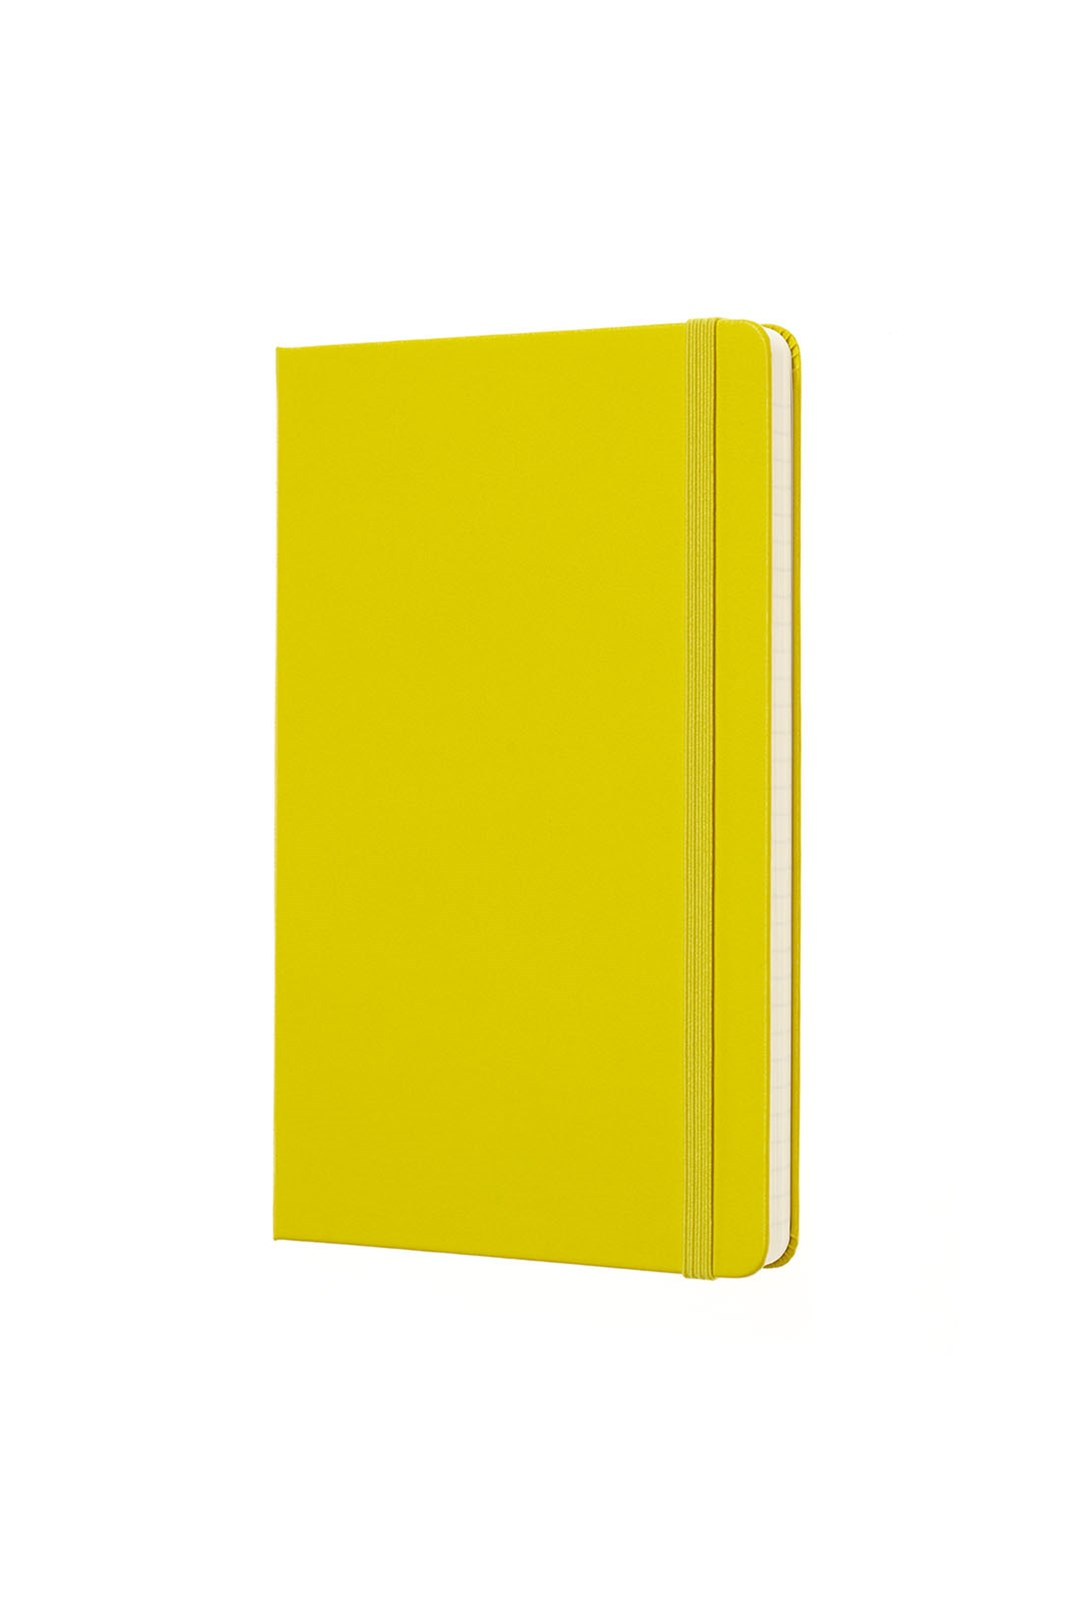 Moleskine - Classic Hard Cover Notebook - Ruled - Large - Dandelion Yellow